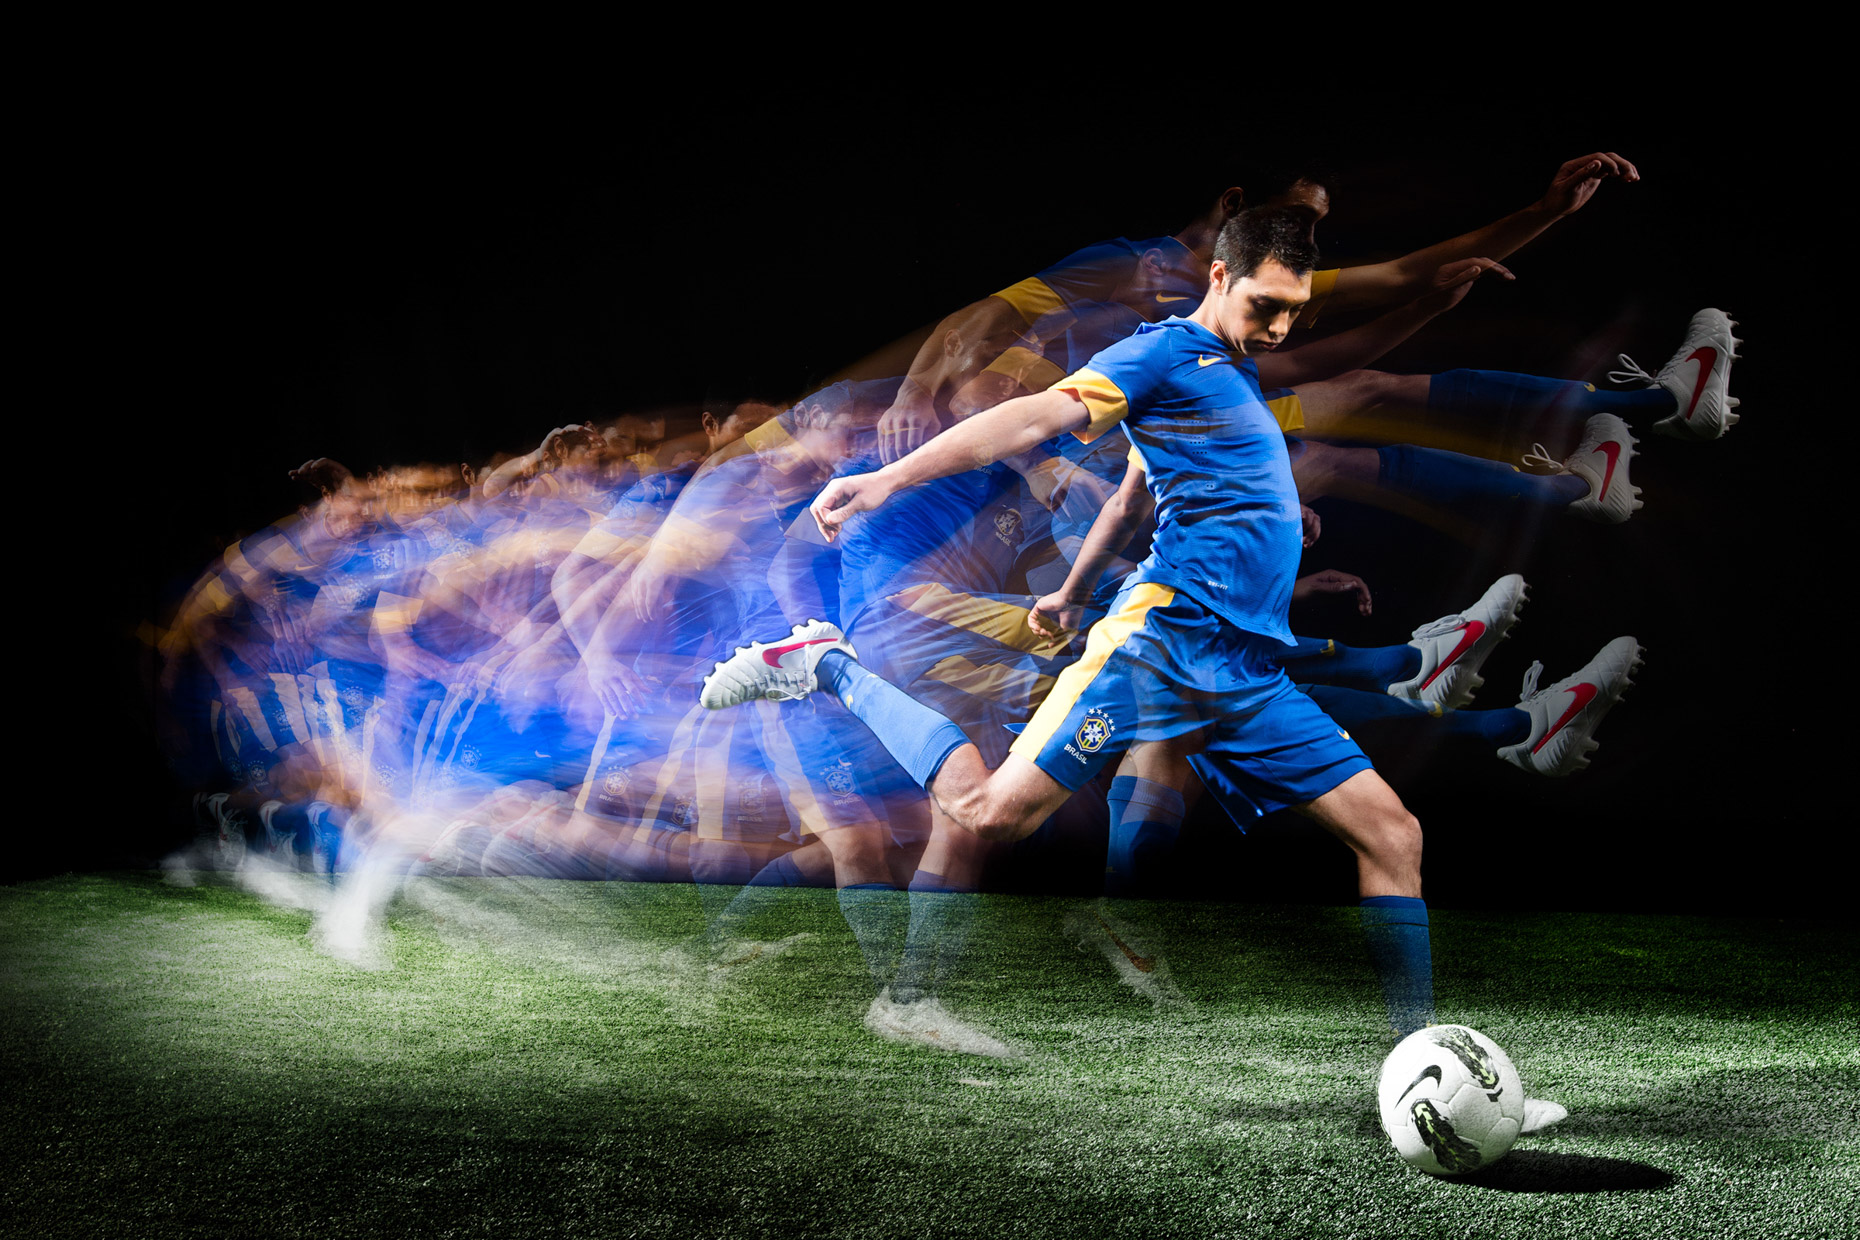 Stroboscopic effects of a soccer kick for Nike futbol